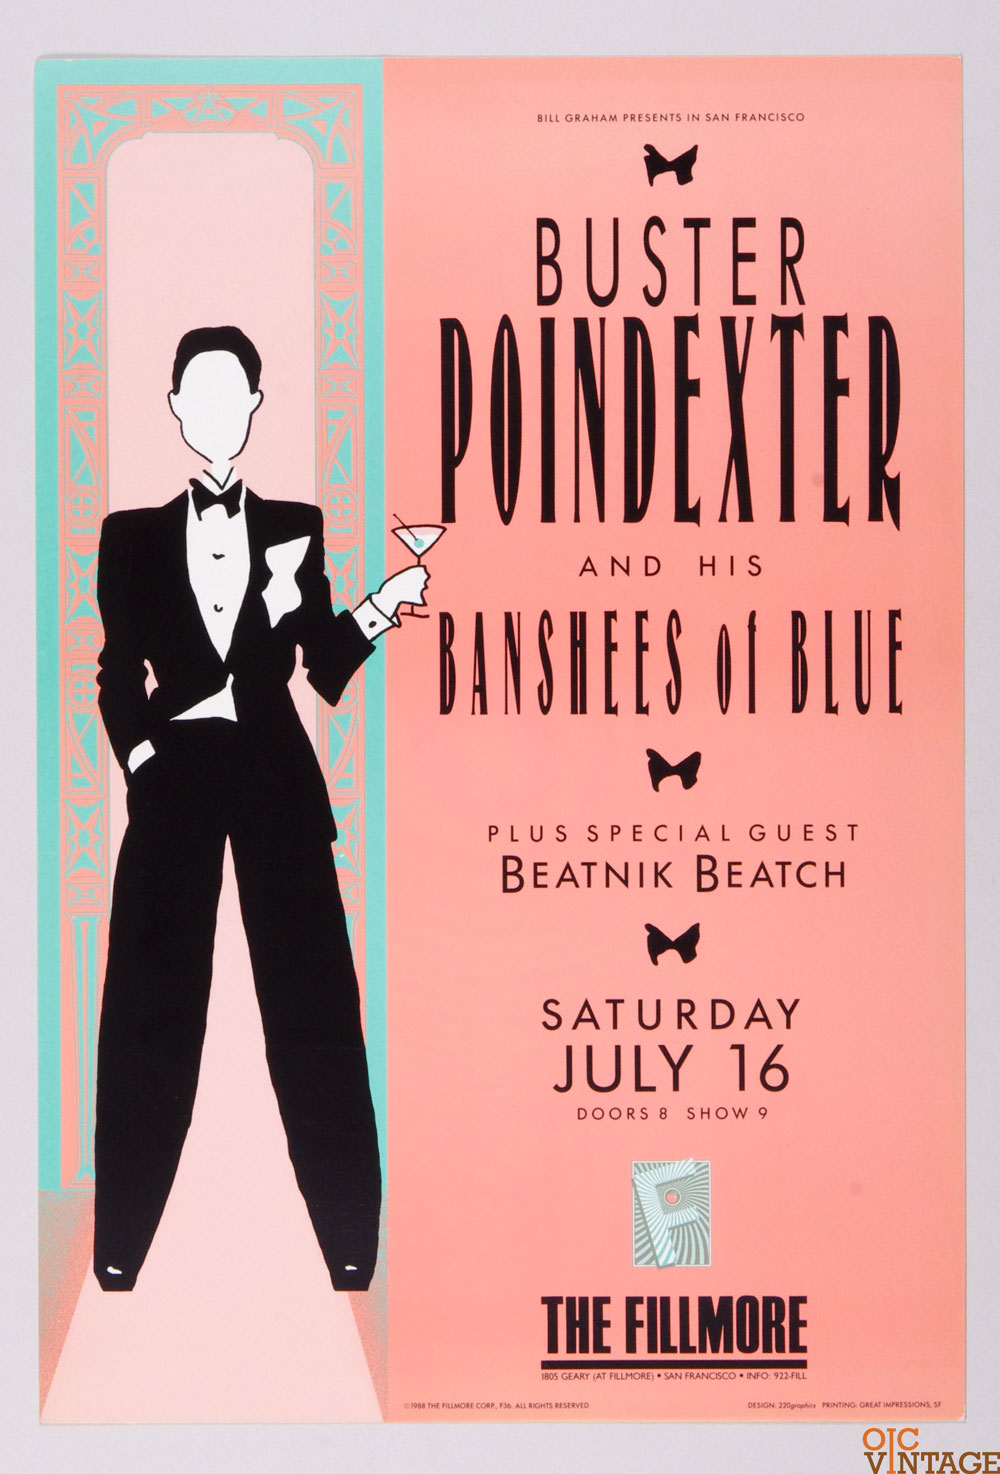 Buster Poindexter and His Banshees of Blue Poster 1988 Jul 16 New Fillmore